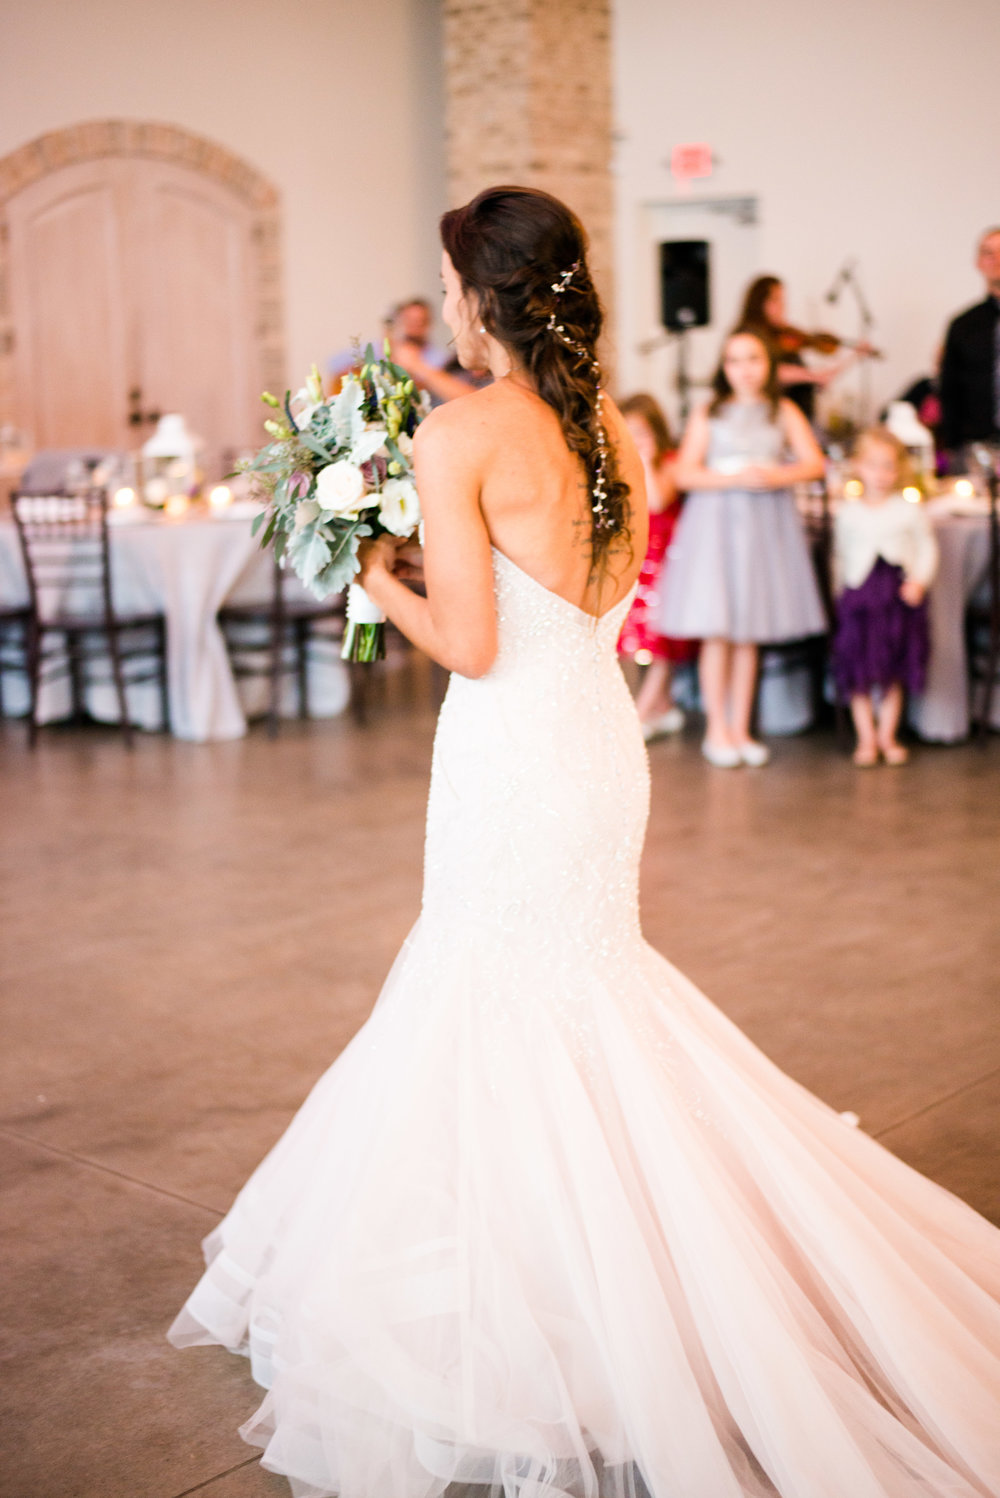 ECLECTIC FALL WEDDING AT WRIGHTSVILLE MANOR | WILMINGTON NC | SELENIA + JAMES